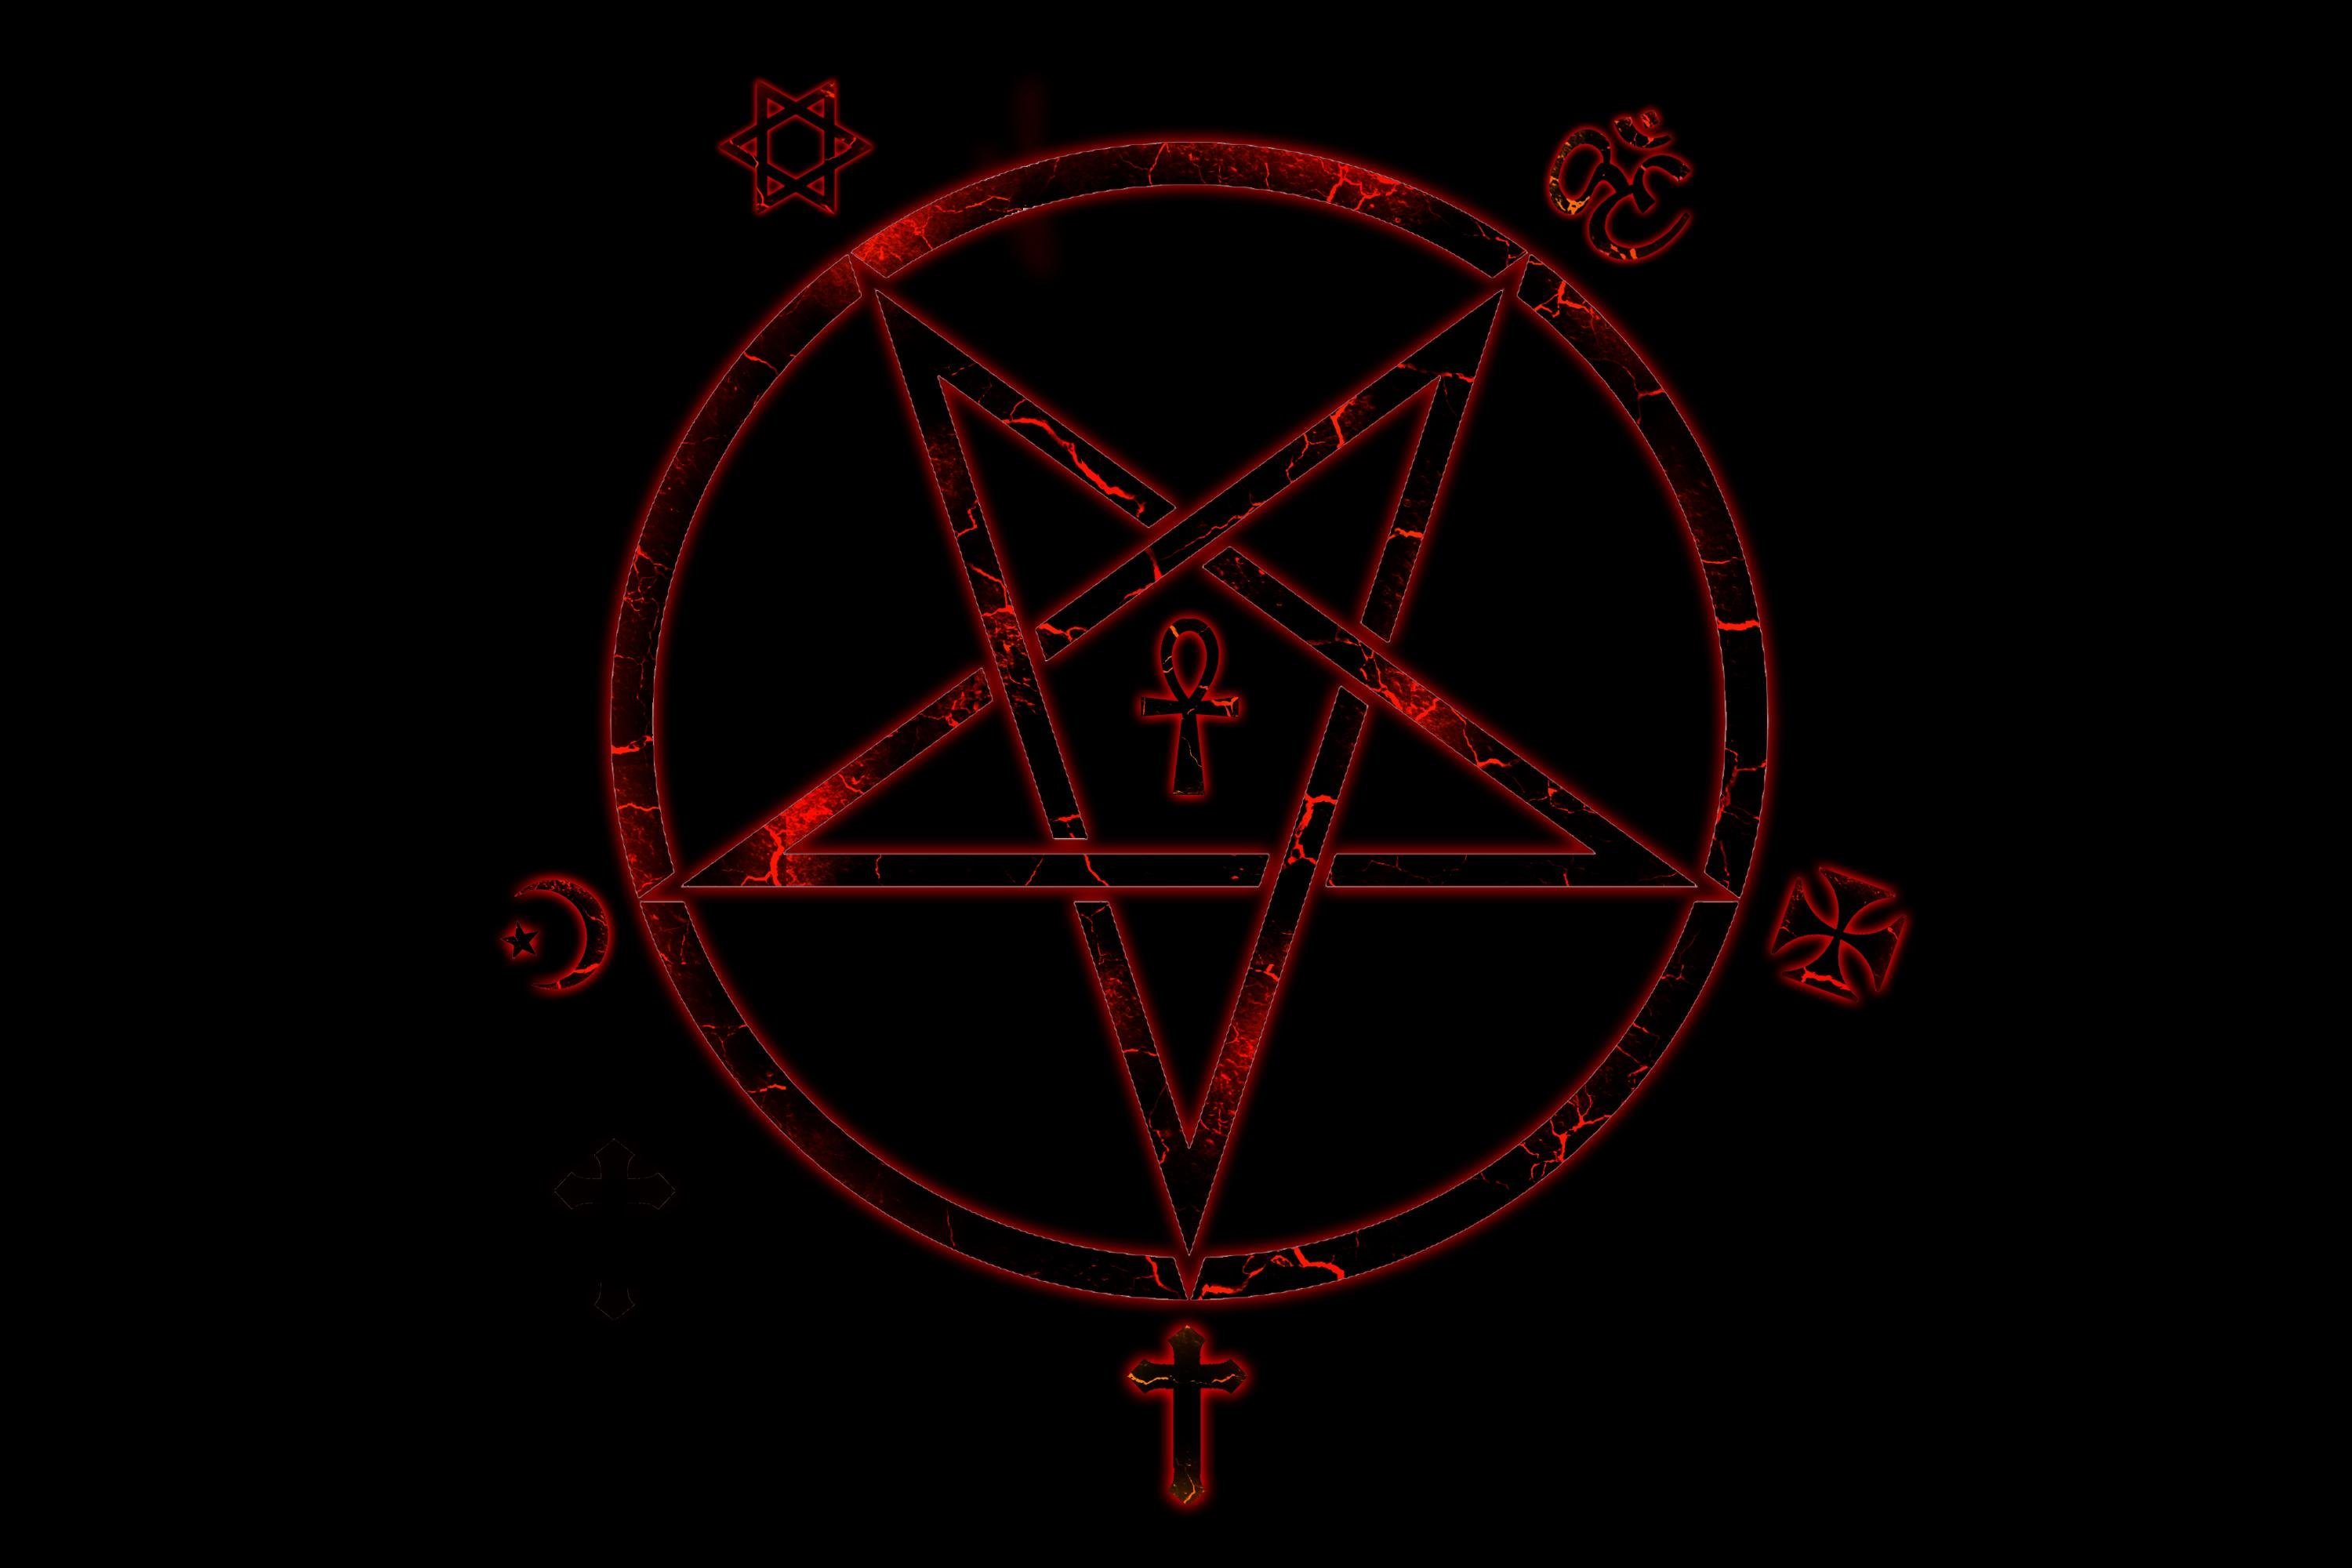 Satanic Iphone Wallpaper Dark Horror Evil Occult Satan Satanic Creepy Wallpaper